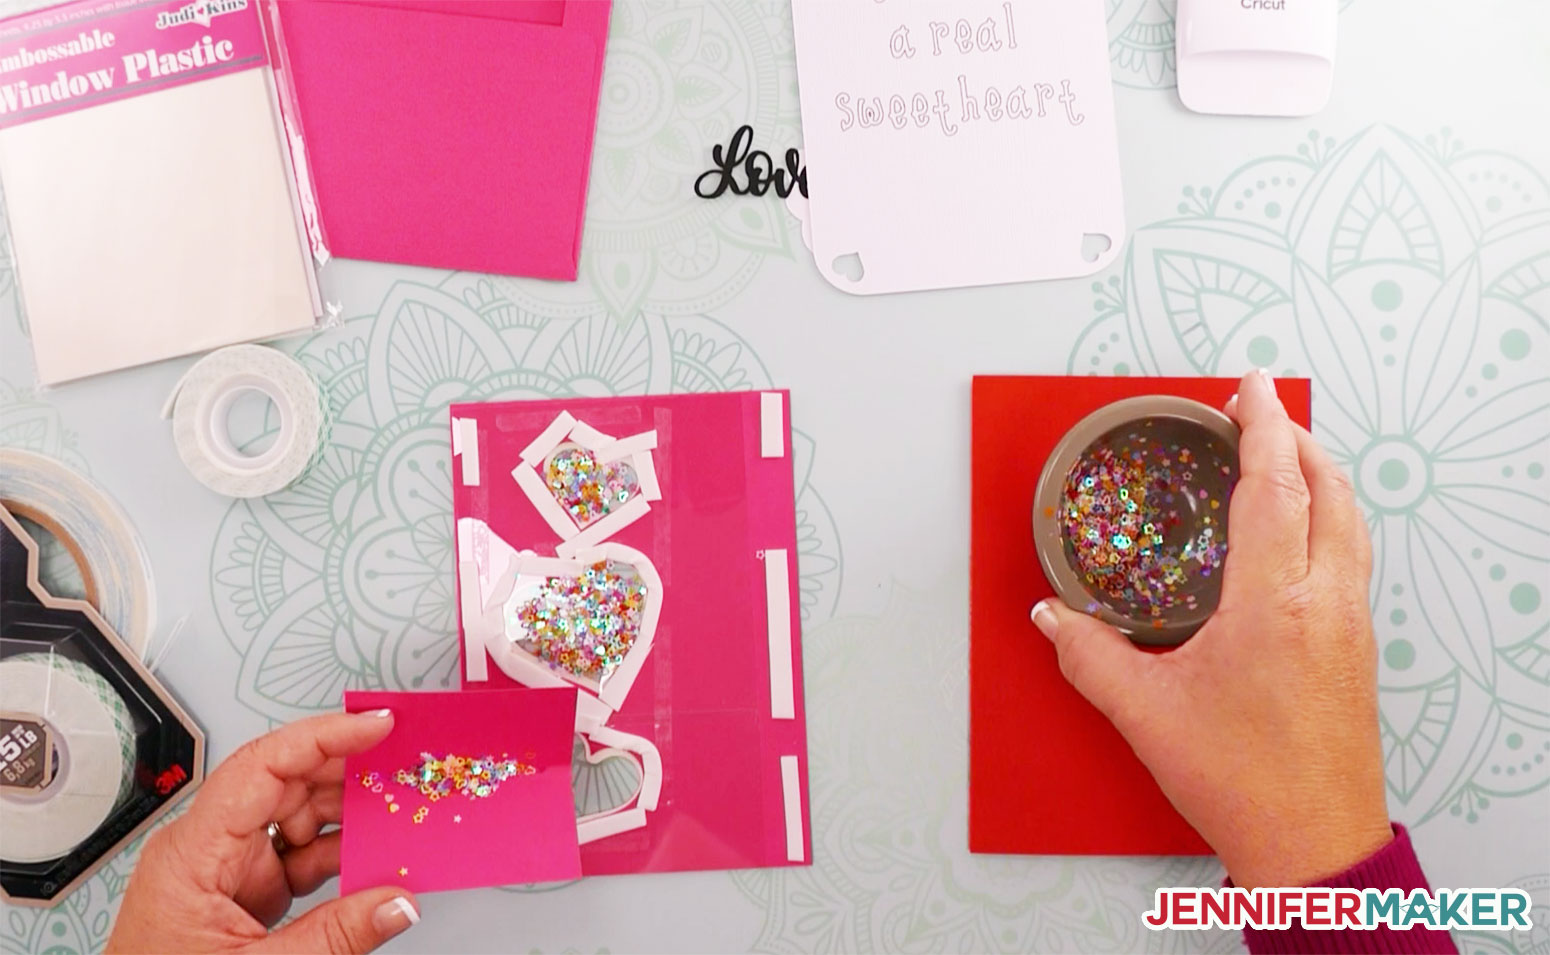 Pouring confetti glitter into the shaker card well